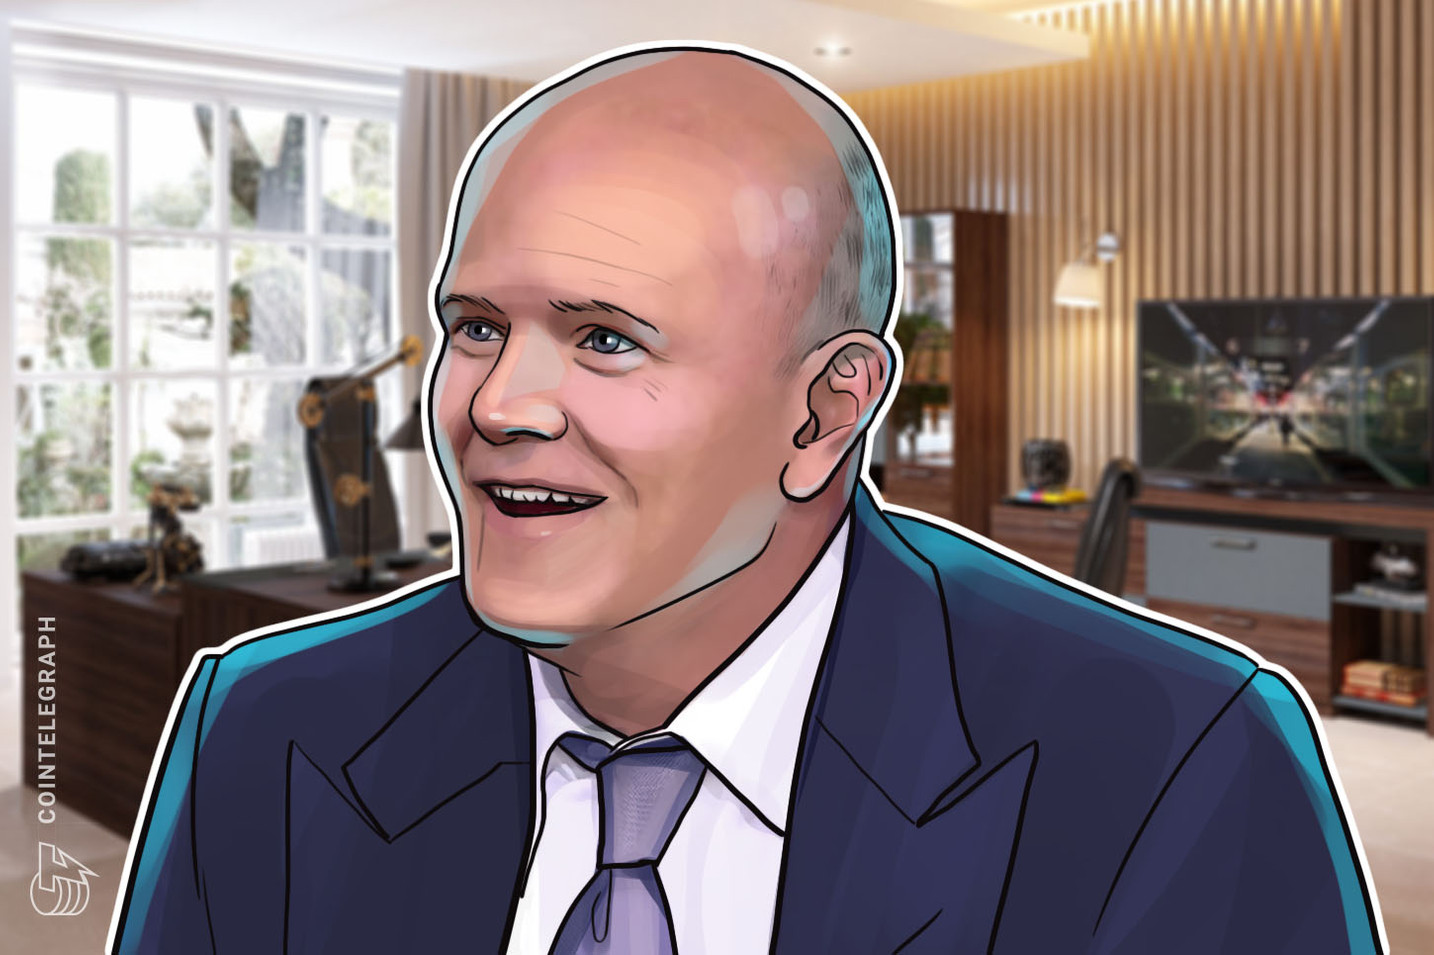 Bitcoin price will hit $65K as network effect has 'taken over' — Mike Novogratz